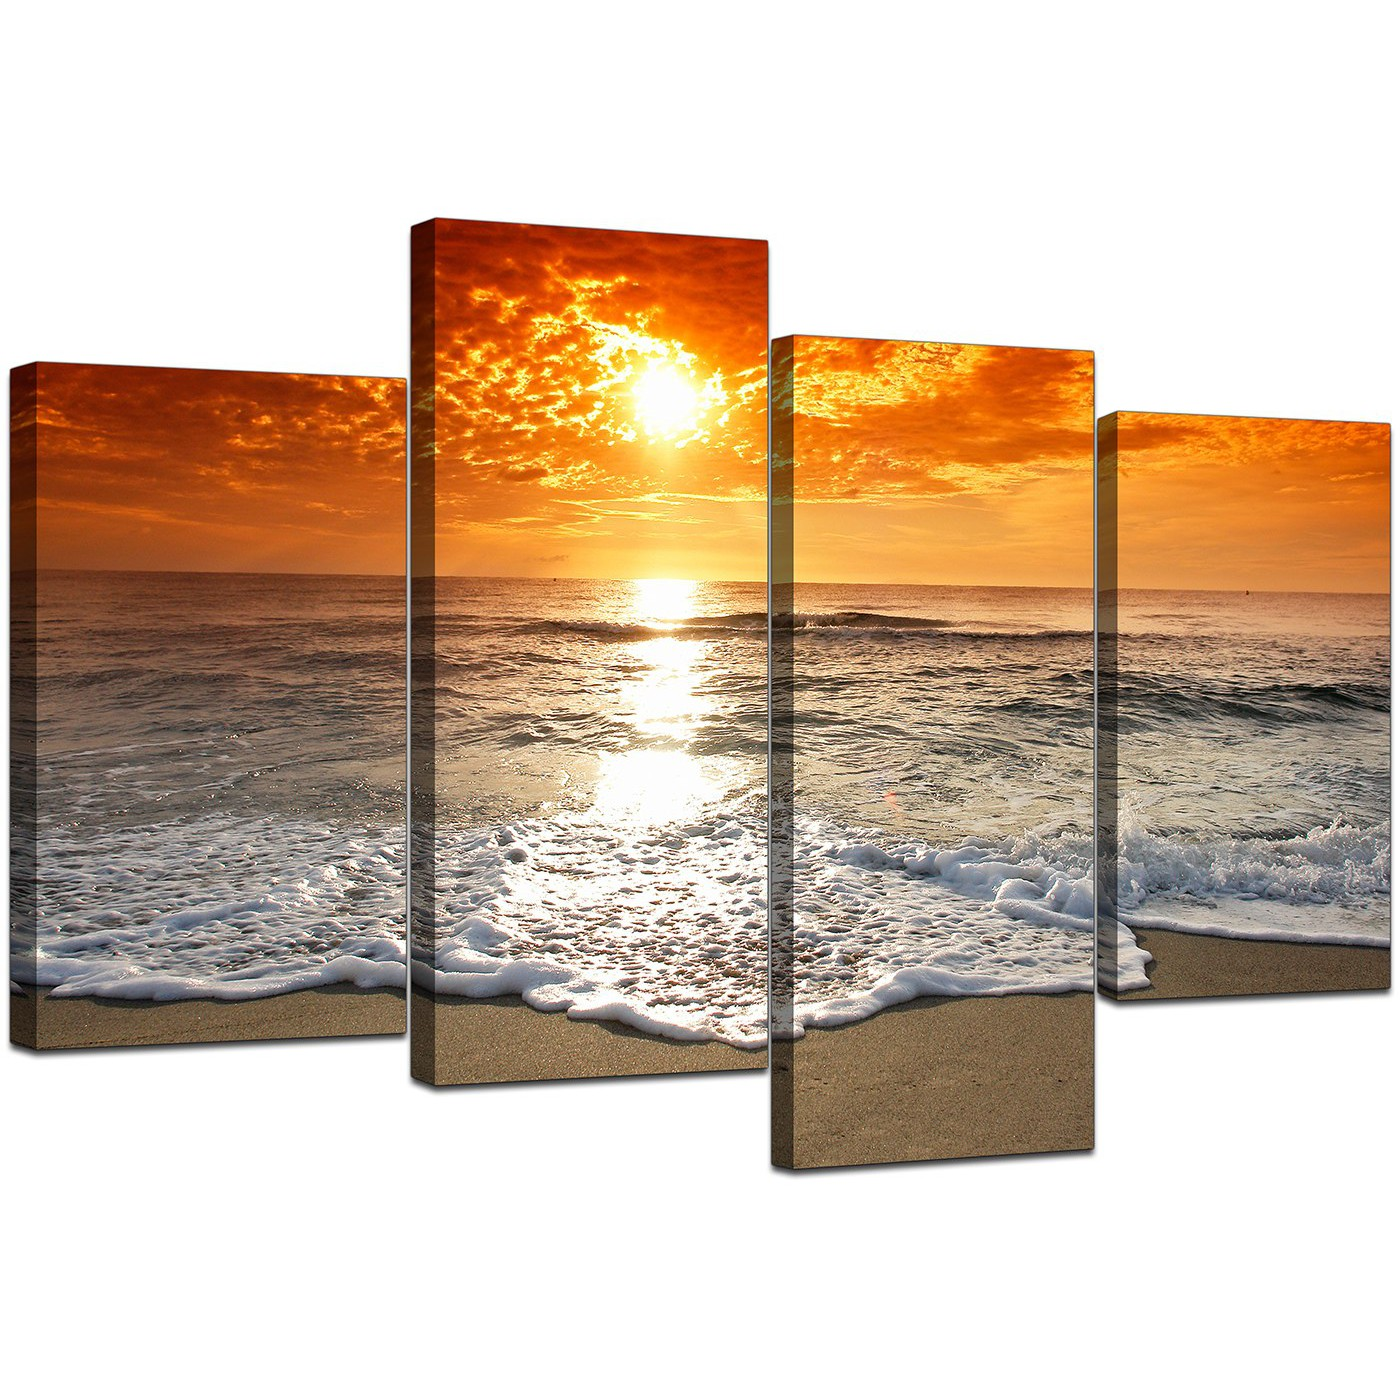 canvas pictures of beach at sunset for your living room. Black Bedroom Furniture Sets. Home Design Ideas